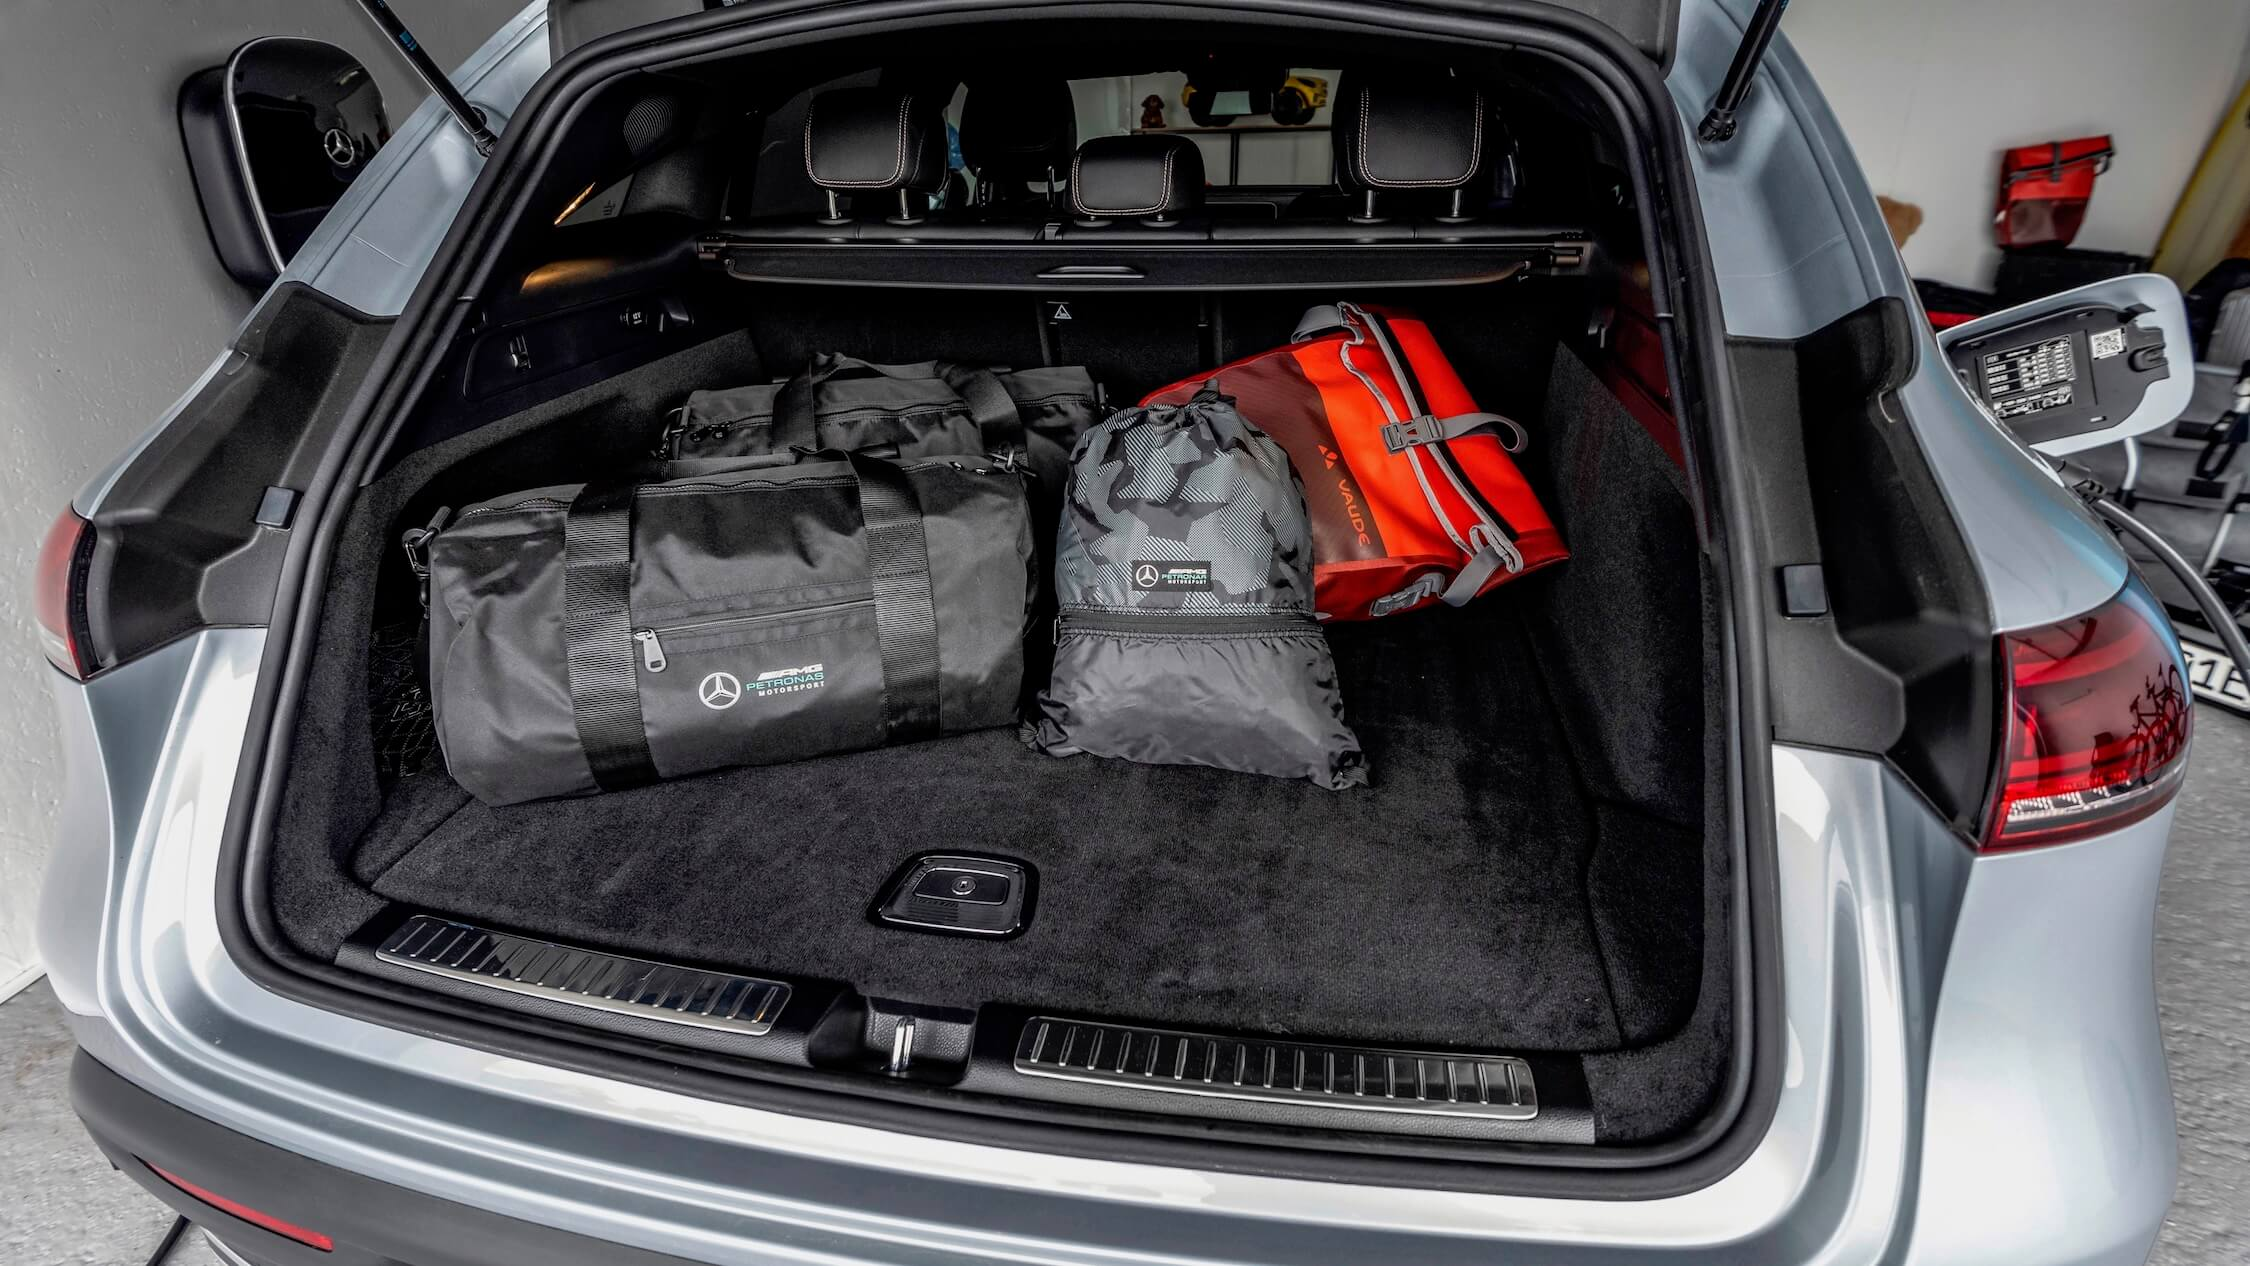 Mercedes EQC trunk with bags